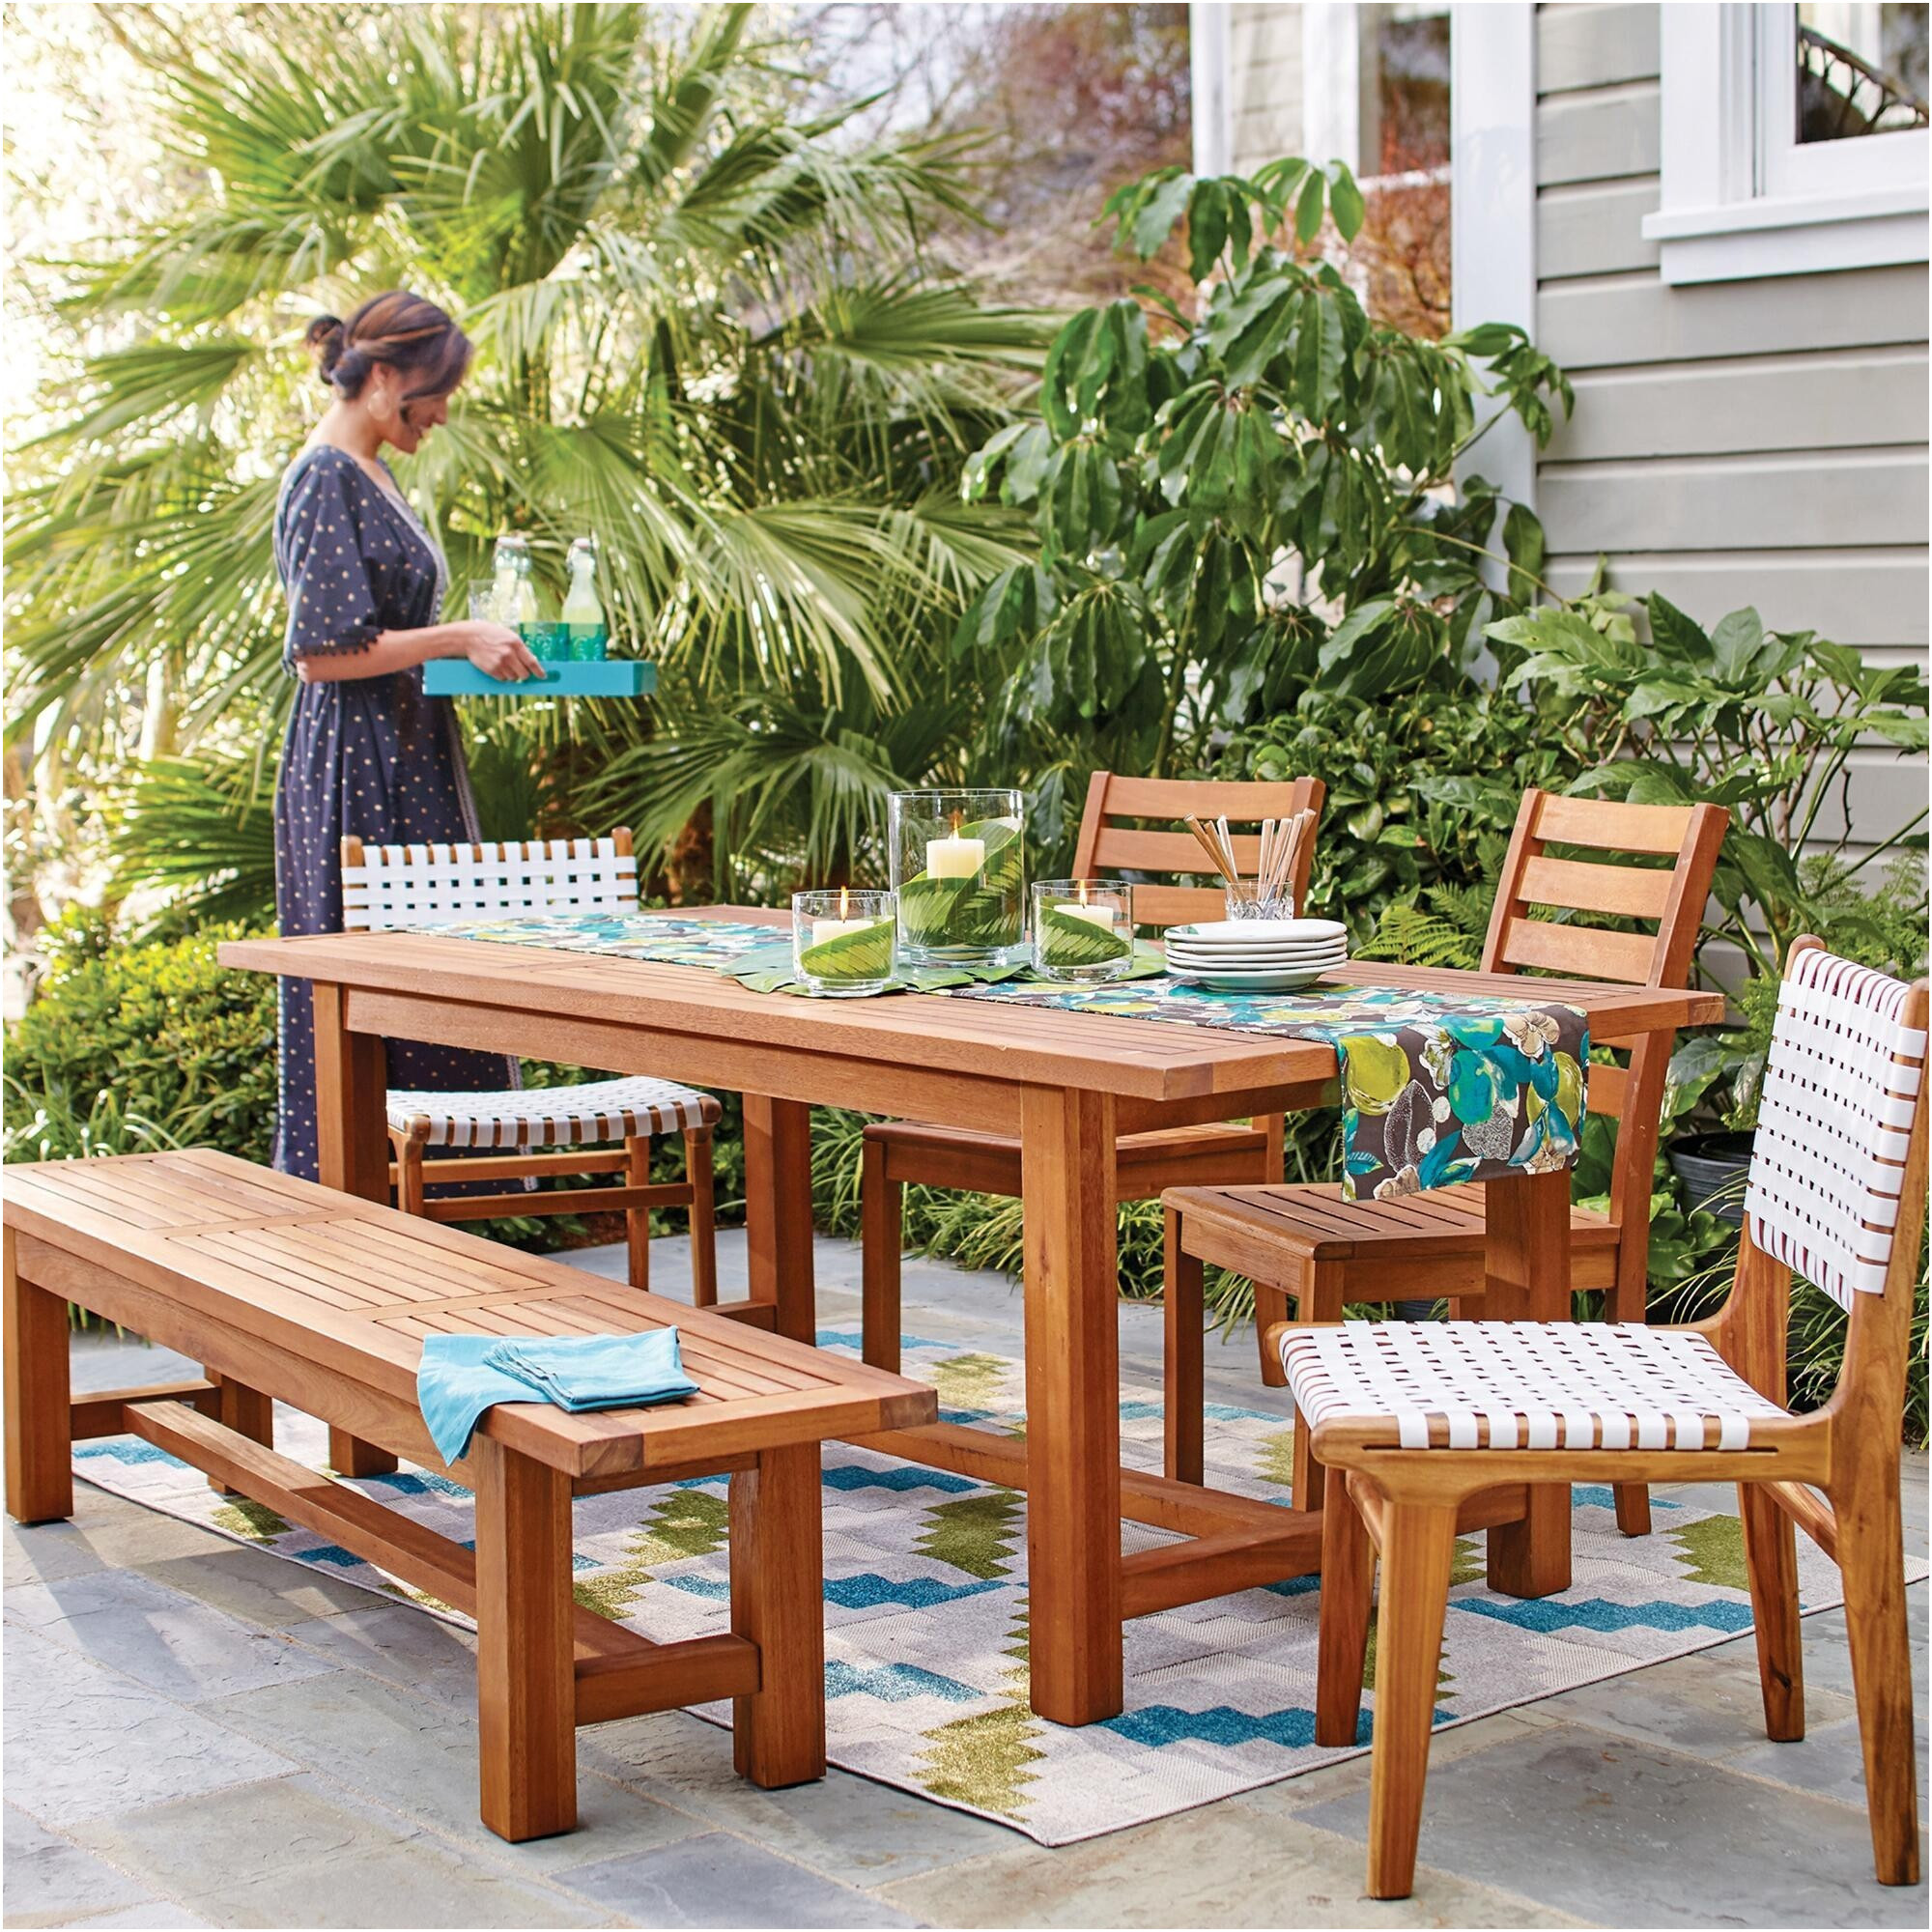 Ipe Hardwood Flooring Reviews Of 5 Popular Outdoor Patio Furniture Albany Ny 332ndf Ipe Wood within 5 Popular Outdoor Patio Furniture Albany Ny 332ndf Ipe Wood Furniture Reviews